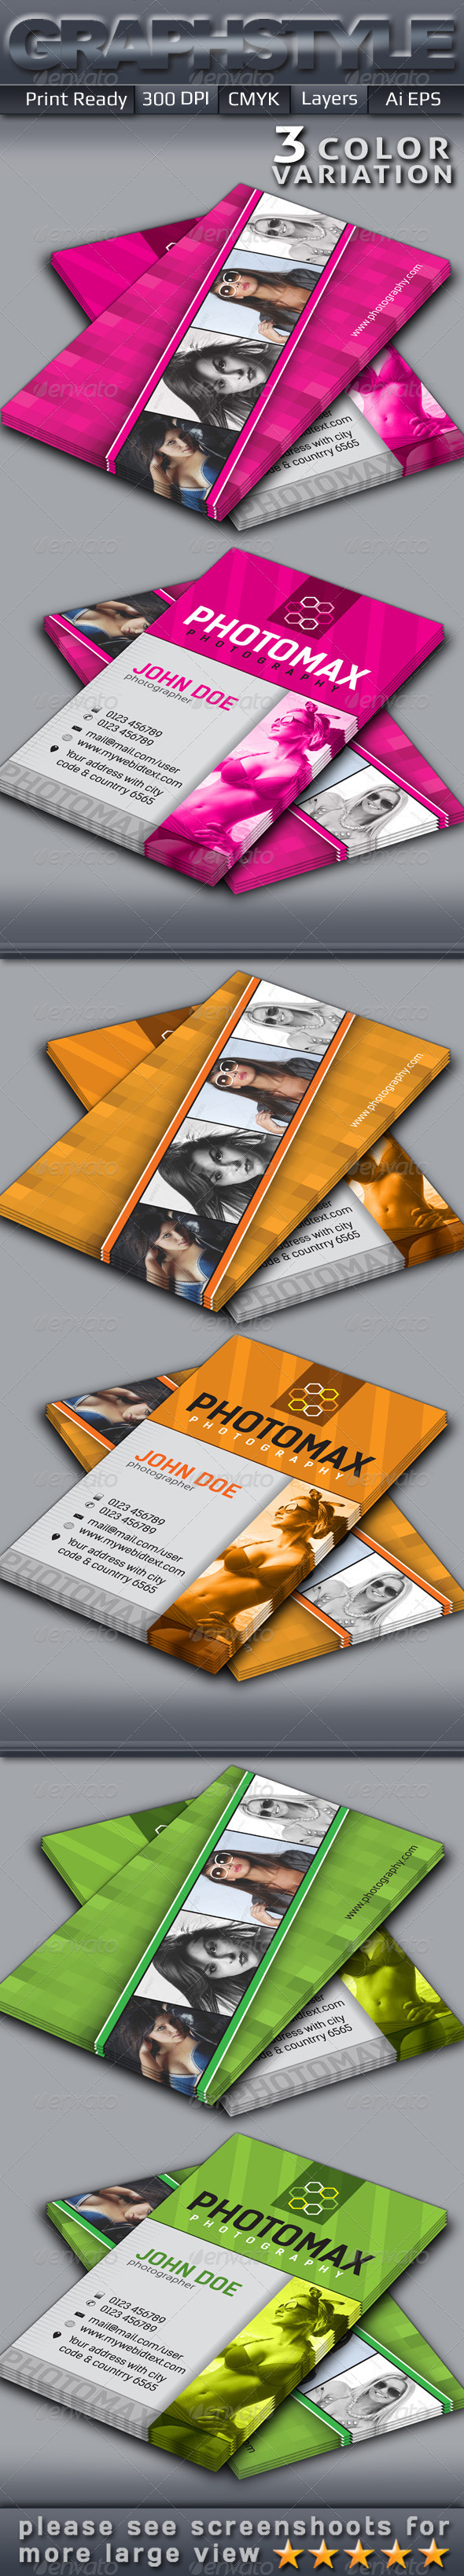 GraphicRiver Photomax Photography Business Card 5258334